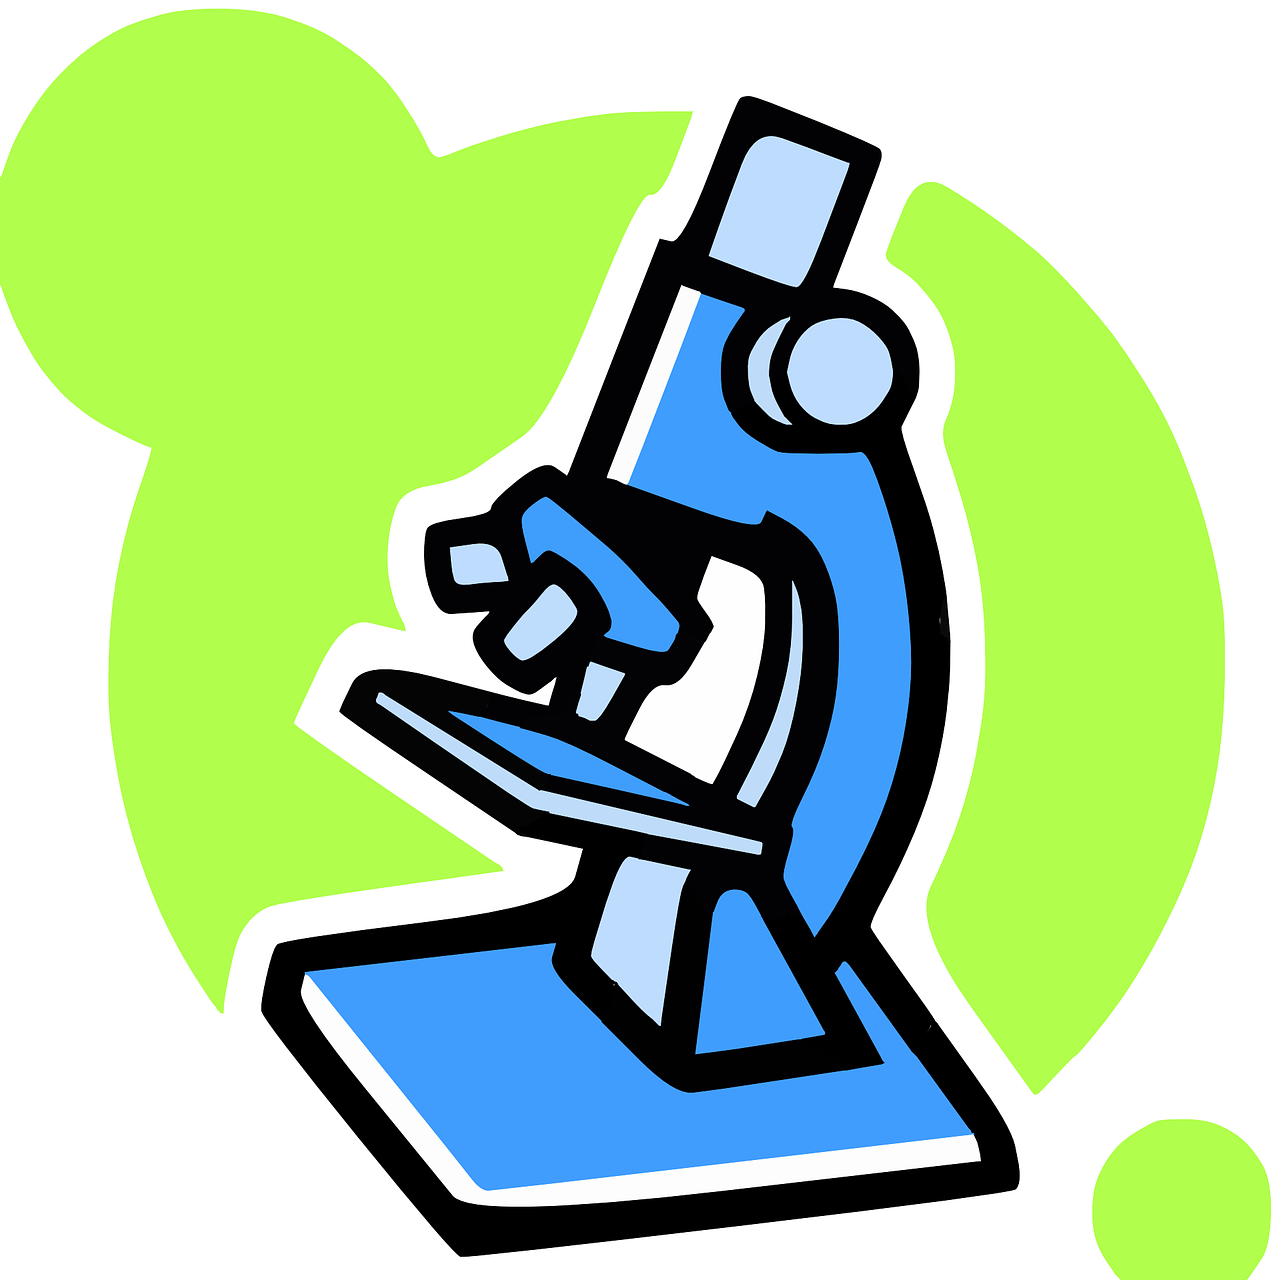 microscope-311859_1280.png